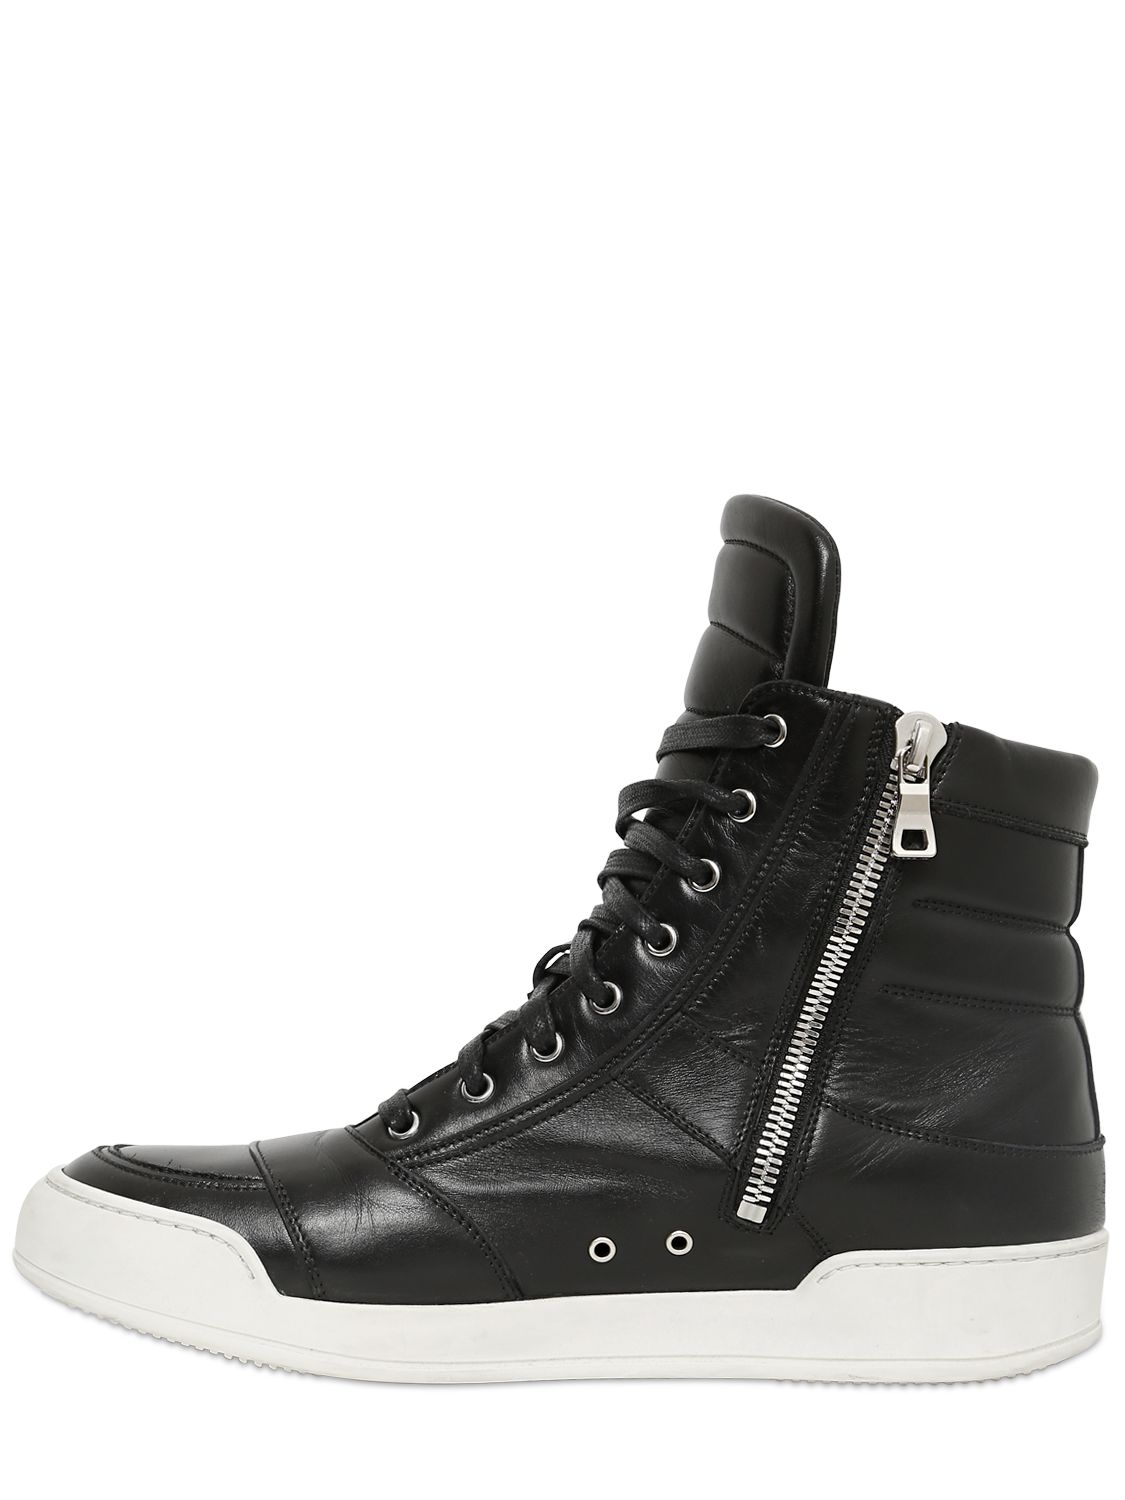 Men and women are pairing heritage-style high tops with serious slacks or that fun little black dress for restrained elegance. Try exchanging those dress shoes and heels for high-top shoes made with neutral soft suede, and premium leather uppers for a chic look with comfy cushioning that lasts all night.